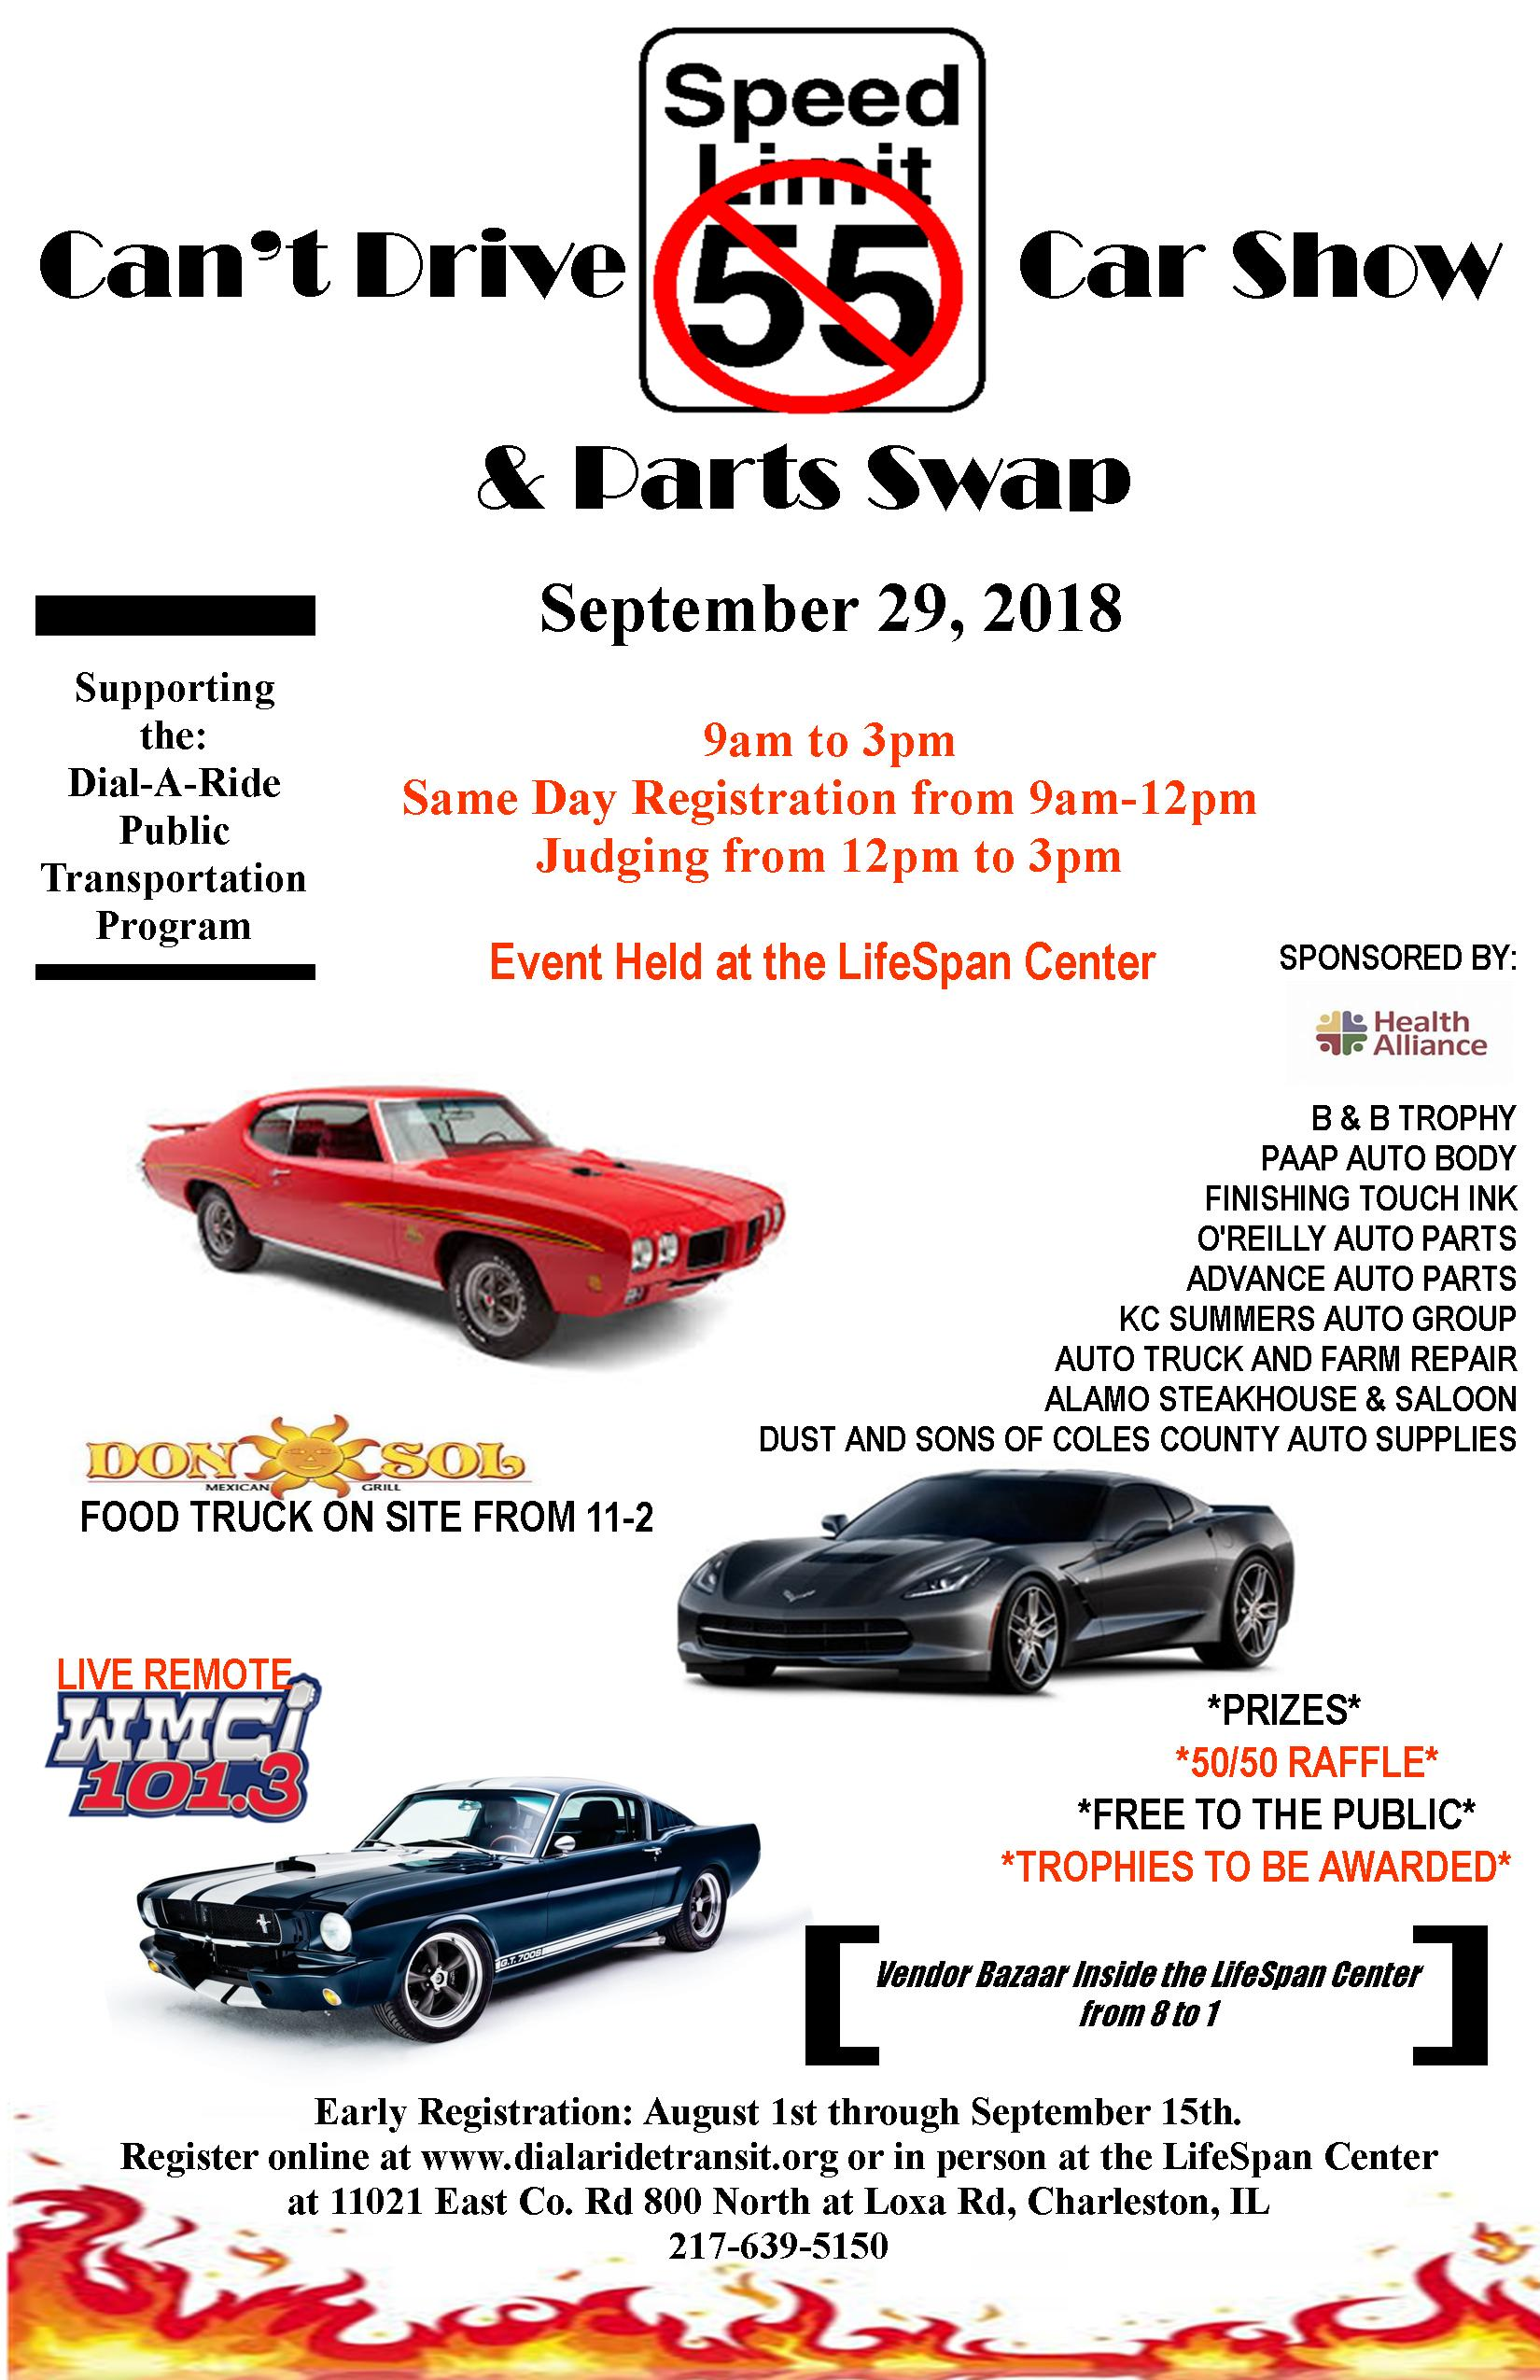 Can't Drive 55 Car Show @ LifeSpan Center | Charleston | Illinois | United States